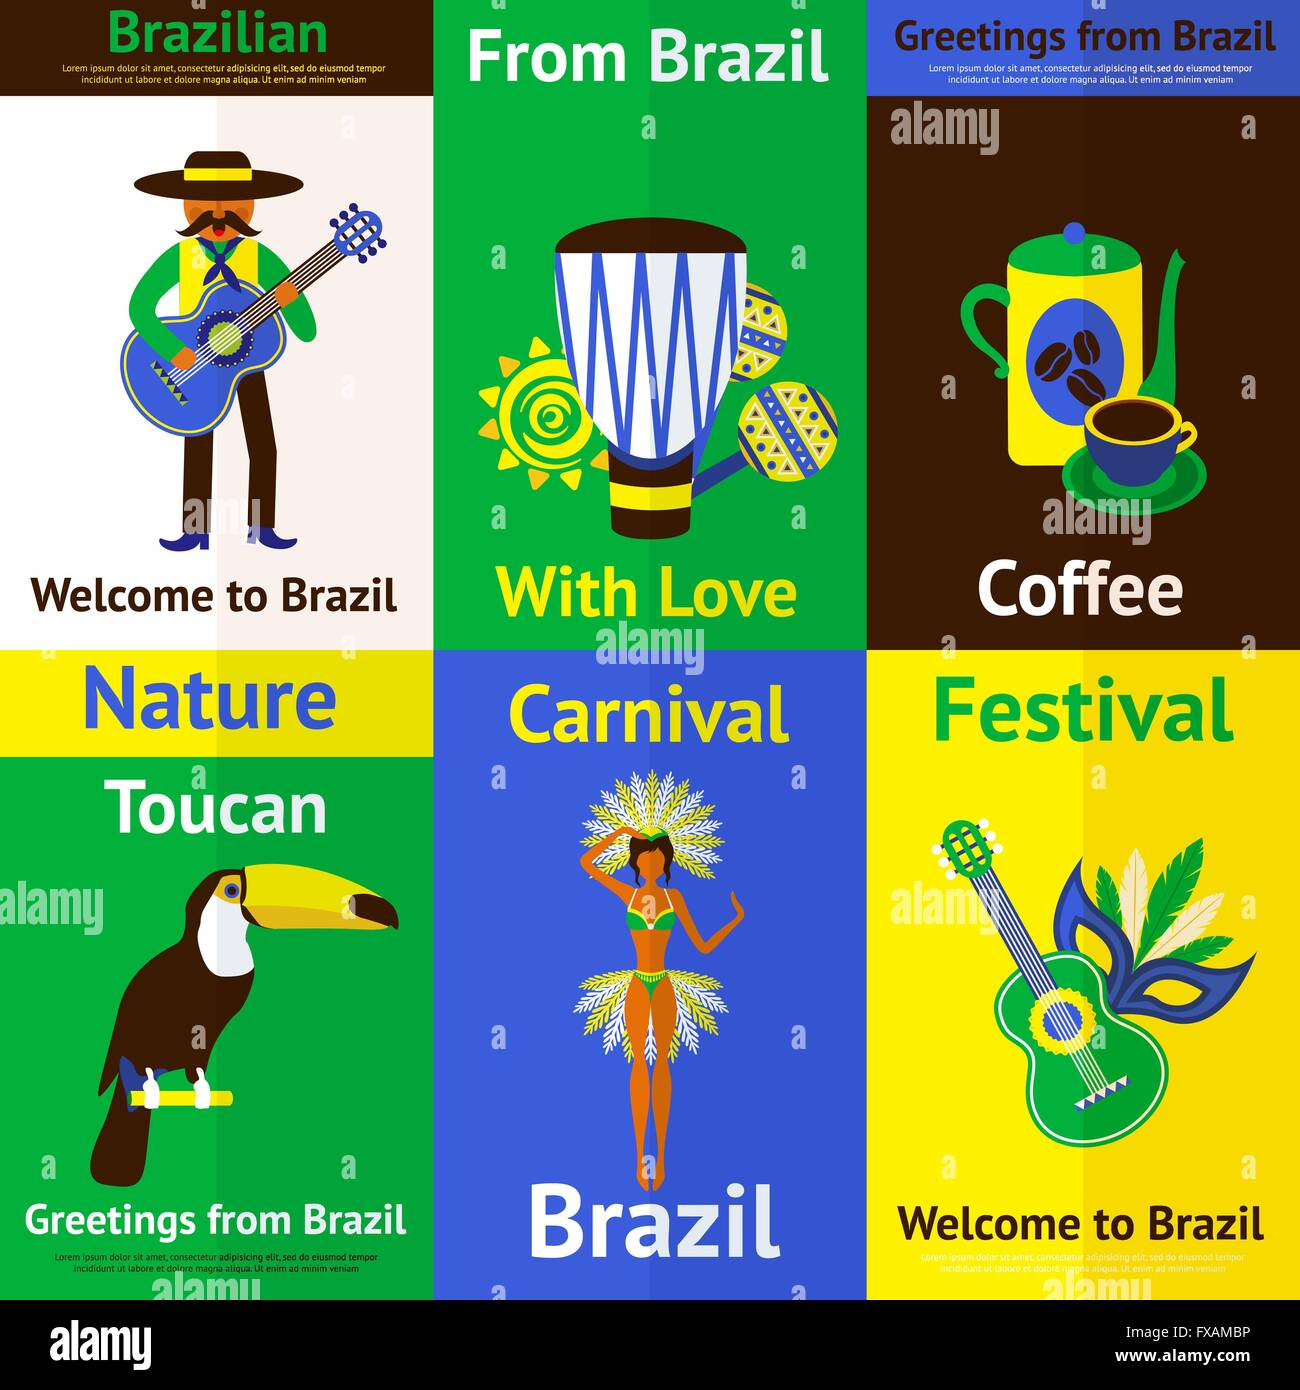 Brazil mini poster set stock vector art illustration vector image brazil mini poster set m4hsunfo